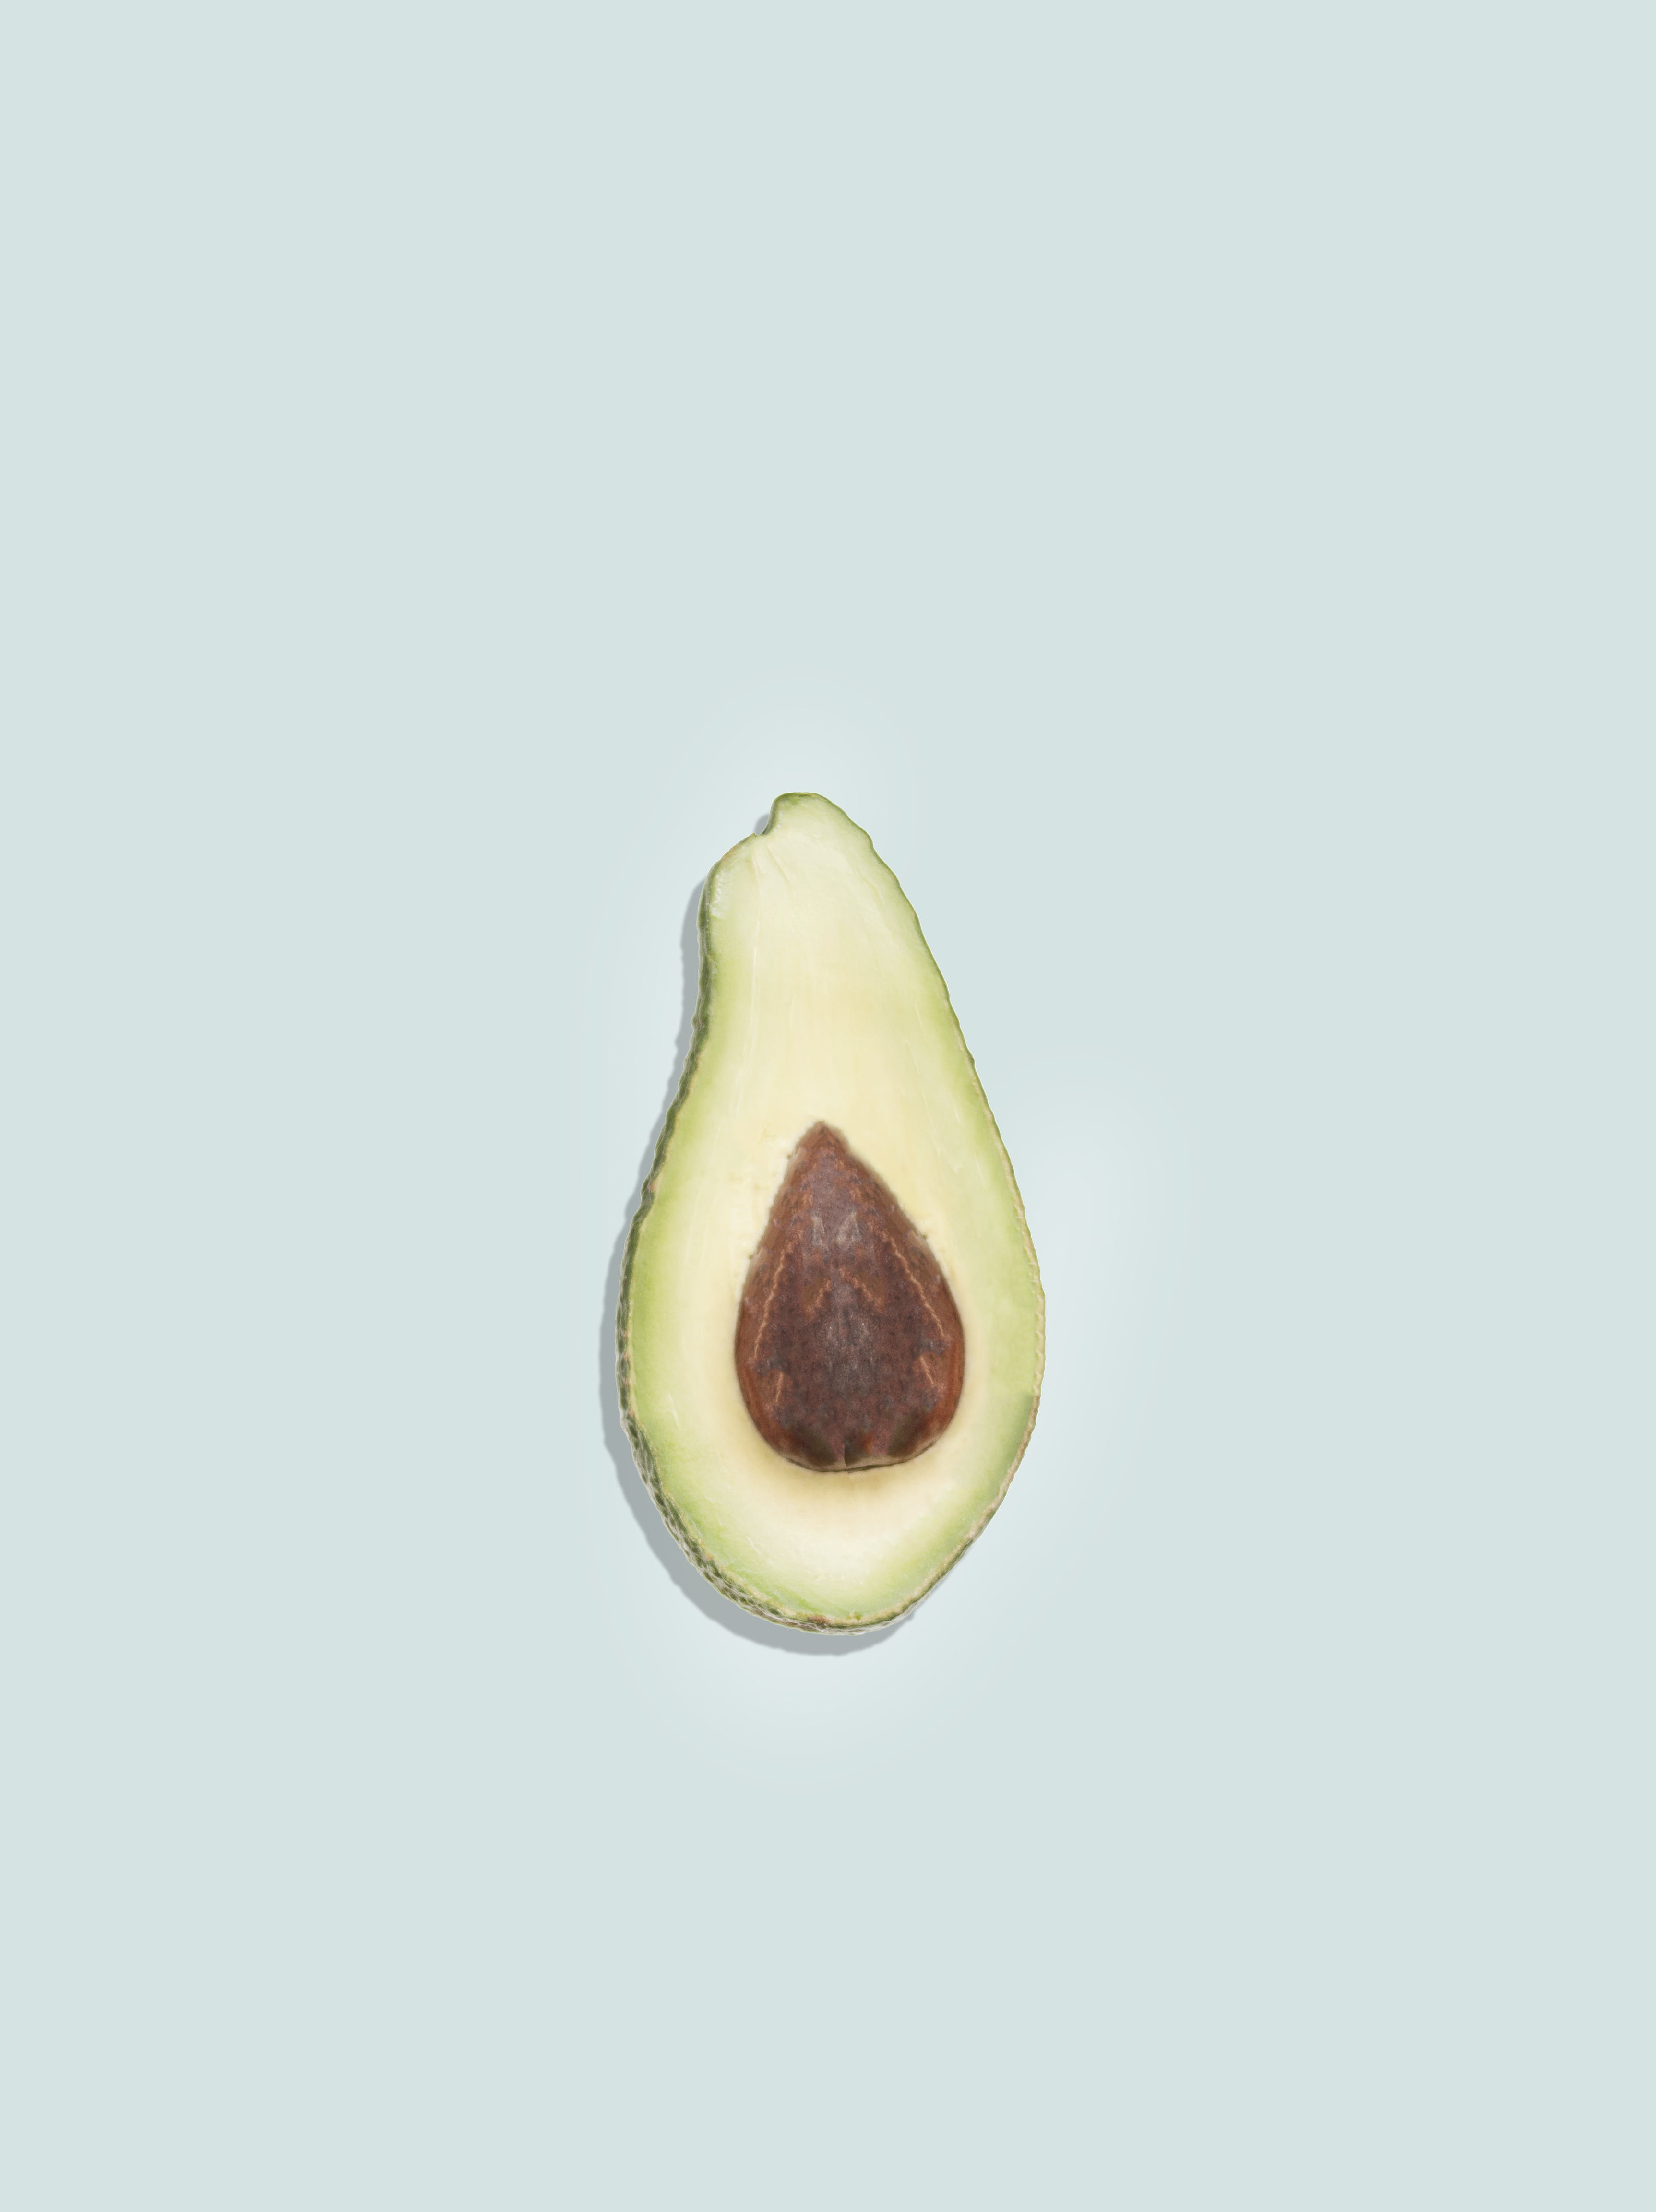 Top View Photo of Sliced Avocado